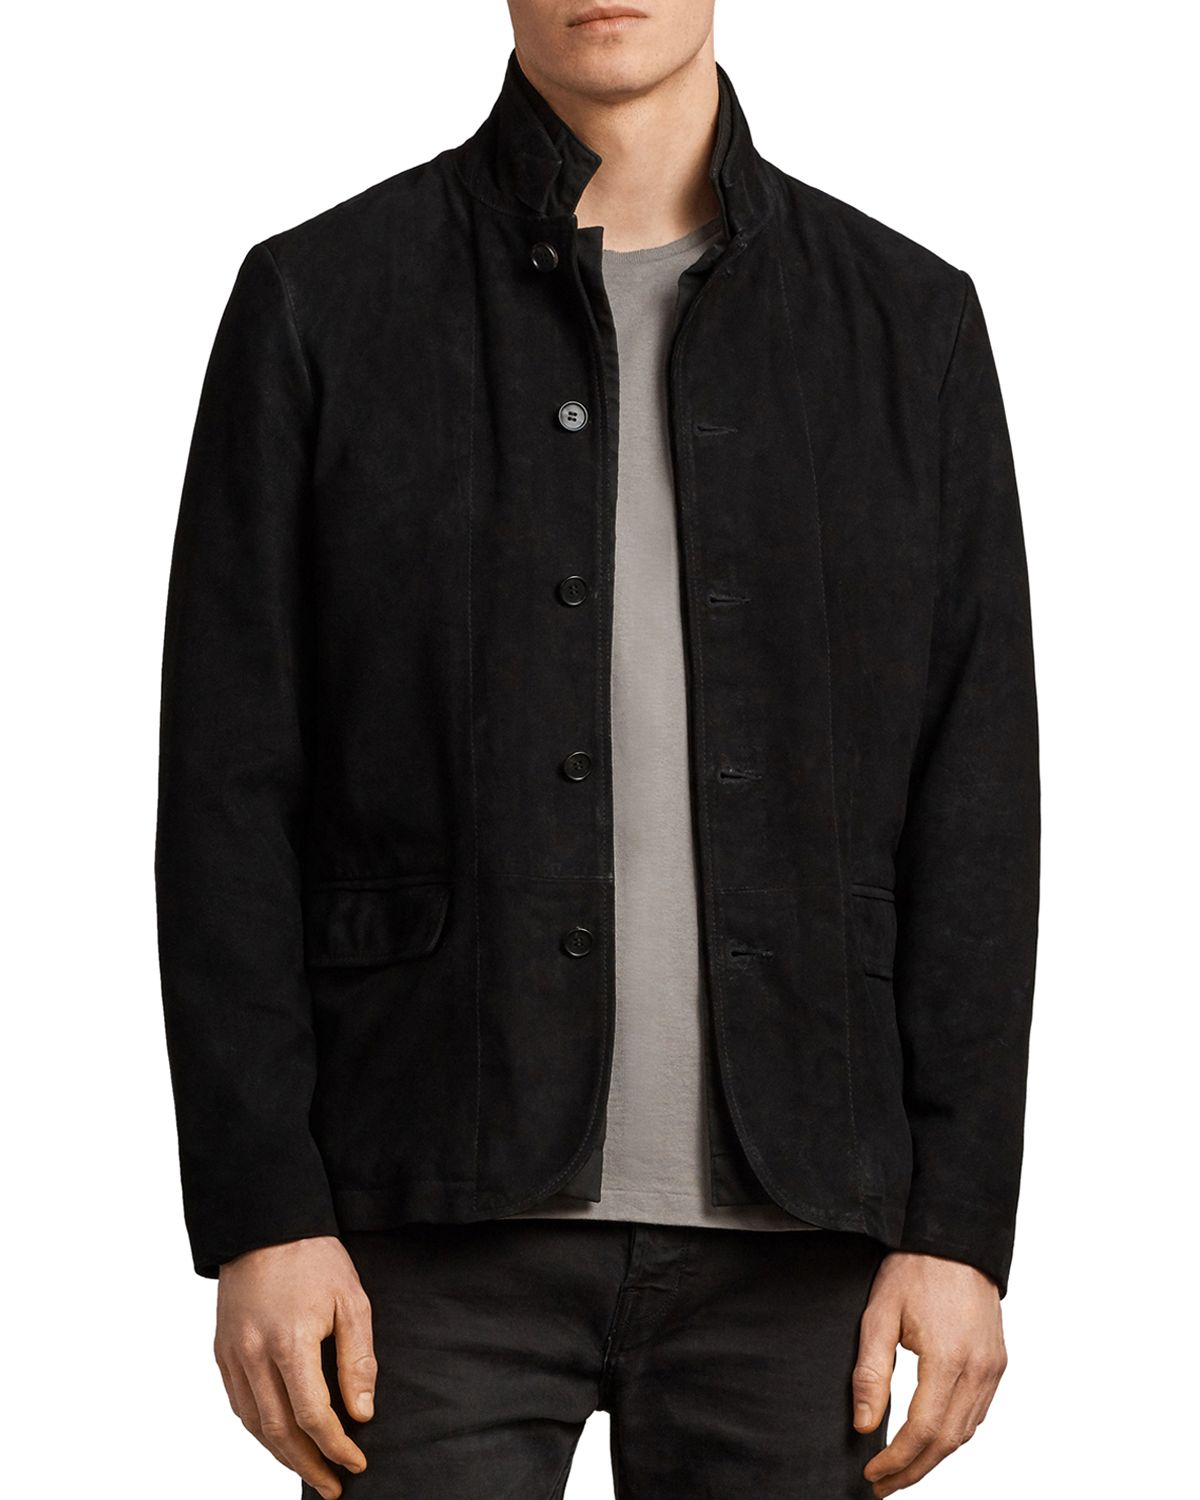 Nolan Jacket by Allsaints